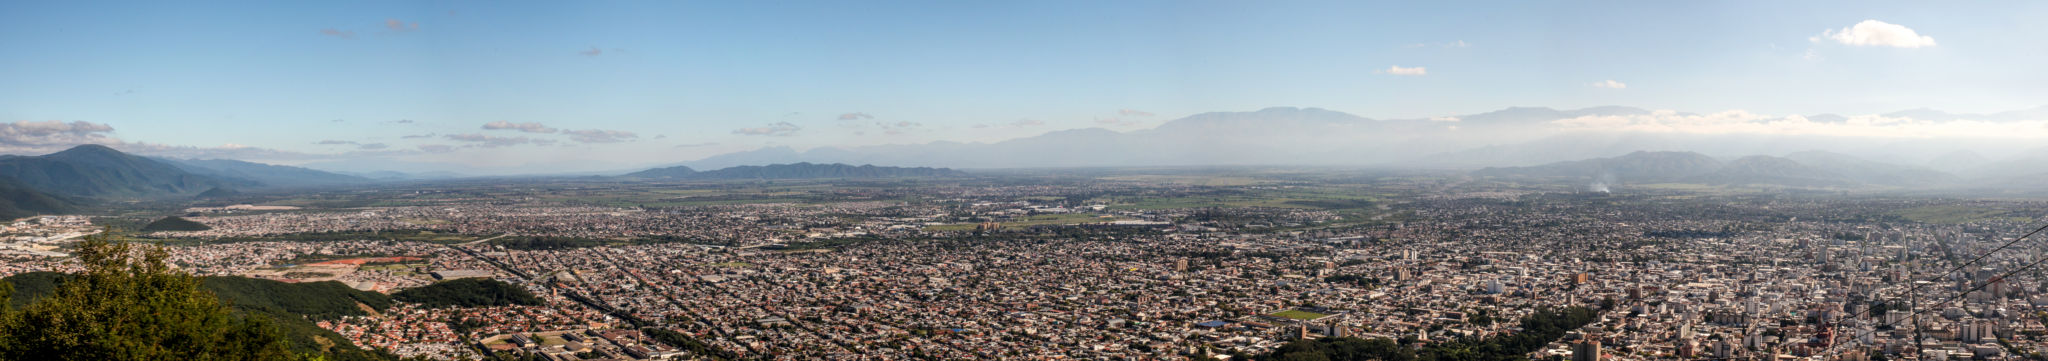 5 Excursiones en Salta | 5 Awesome things to do in Salta